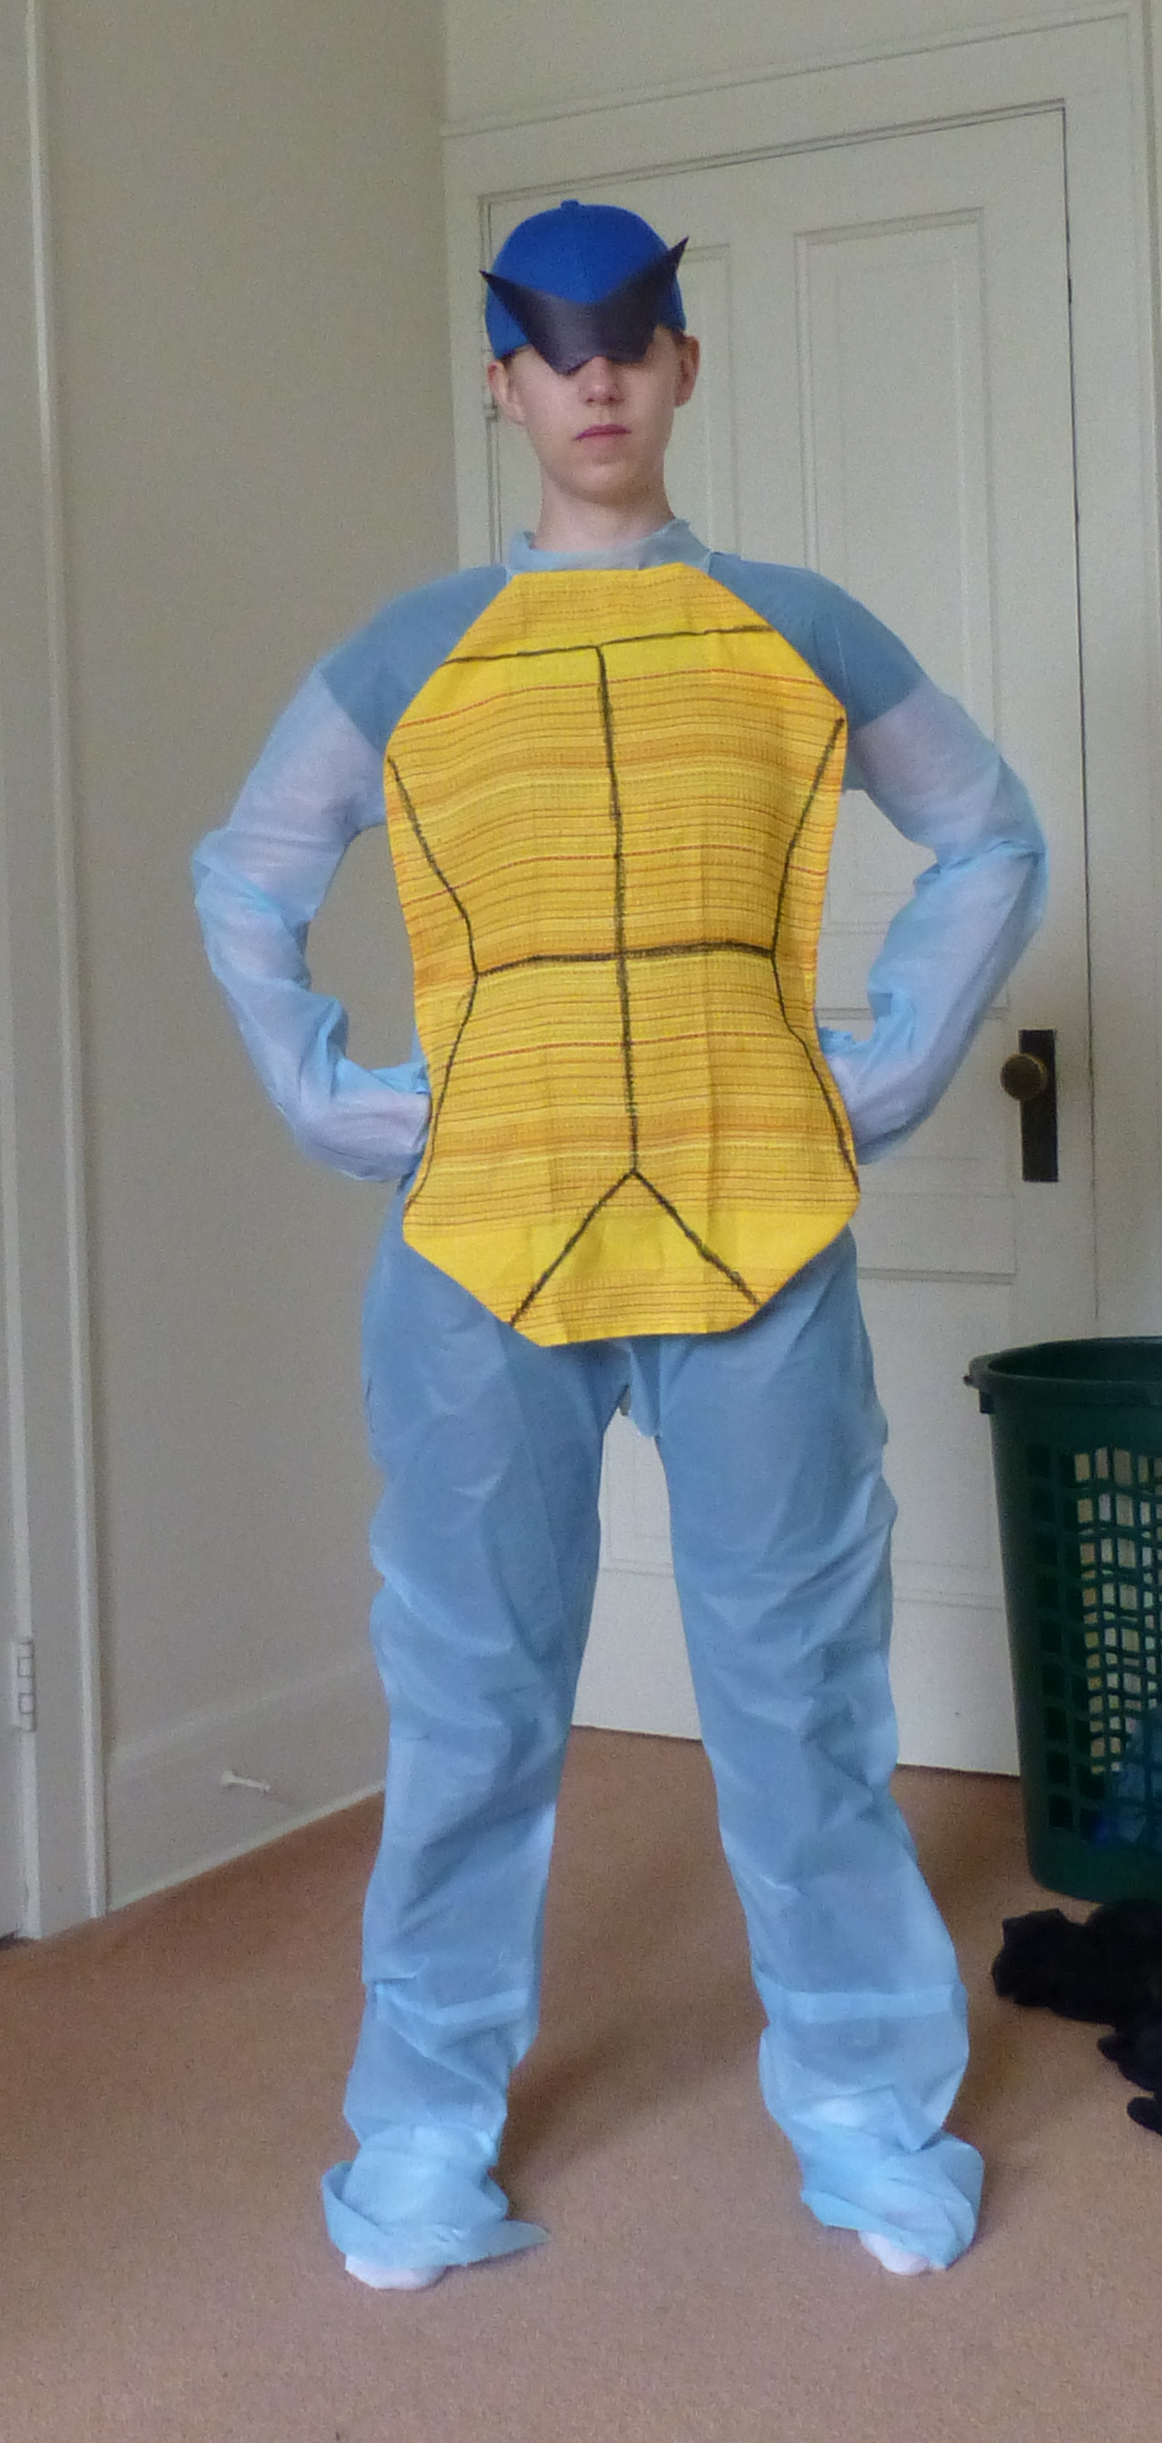 Squirtle Dollar Store cosplay challenge